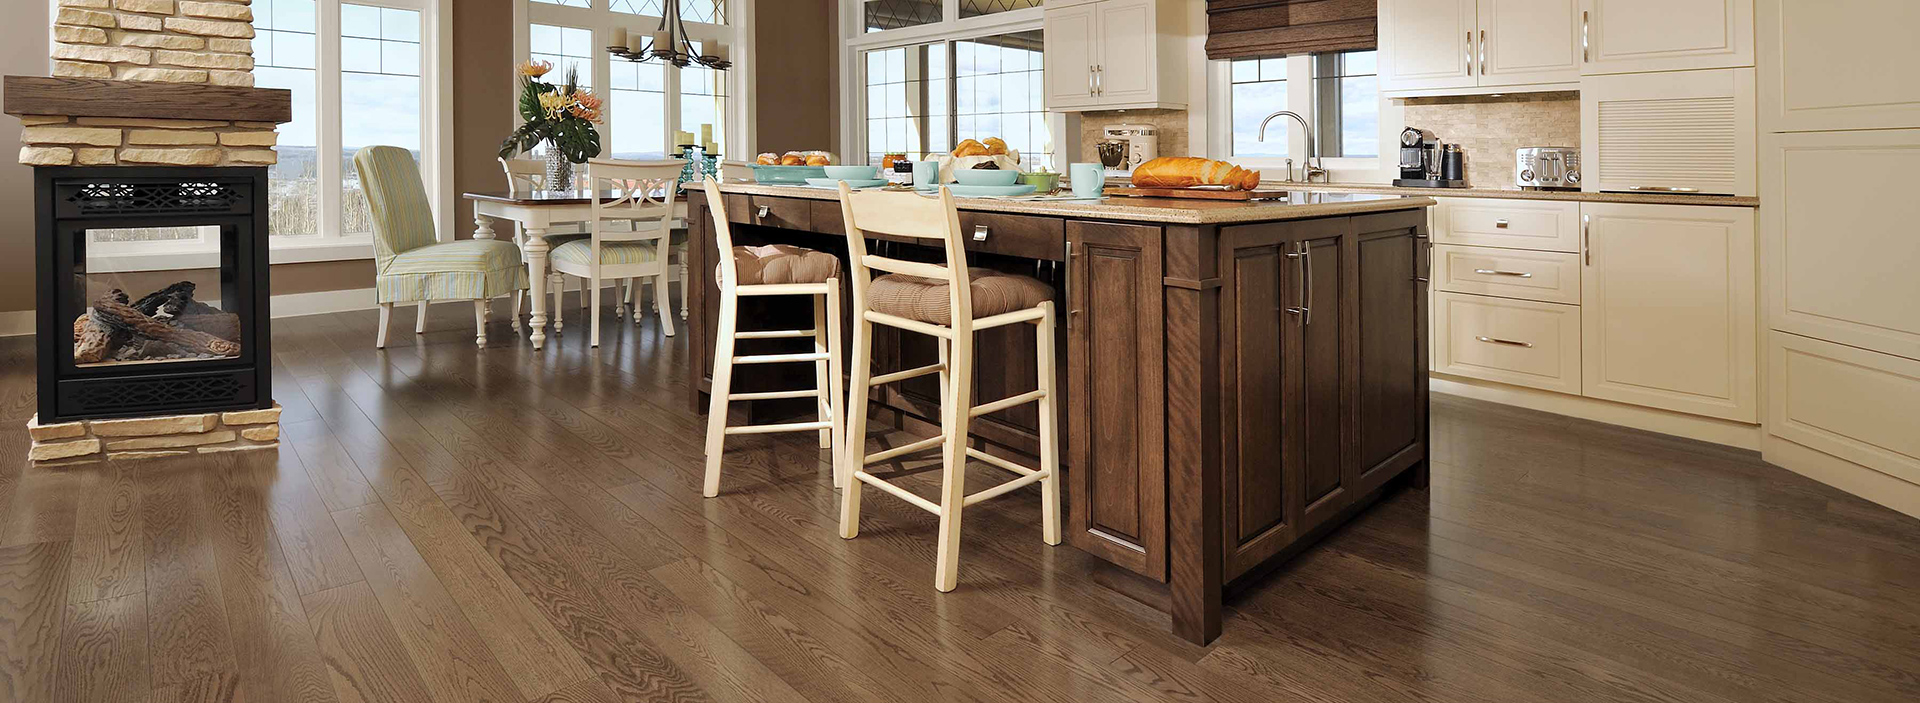 Dlv flooring dustless hardwood floor refinishing and for Hardwood floors kansas city